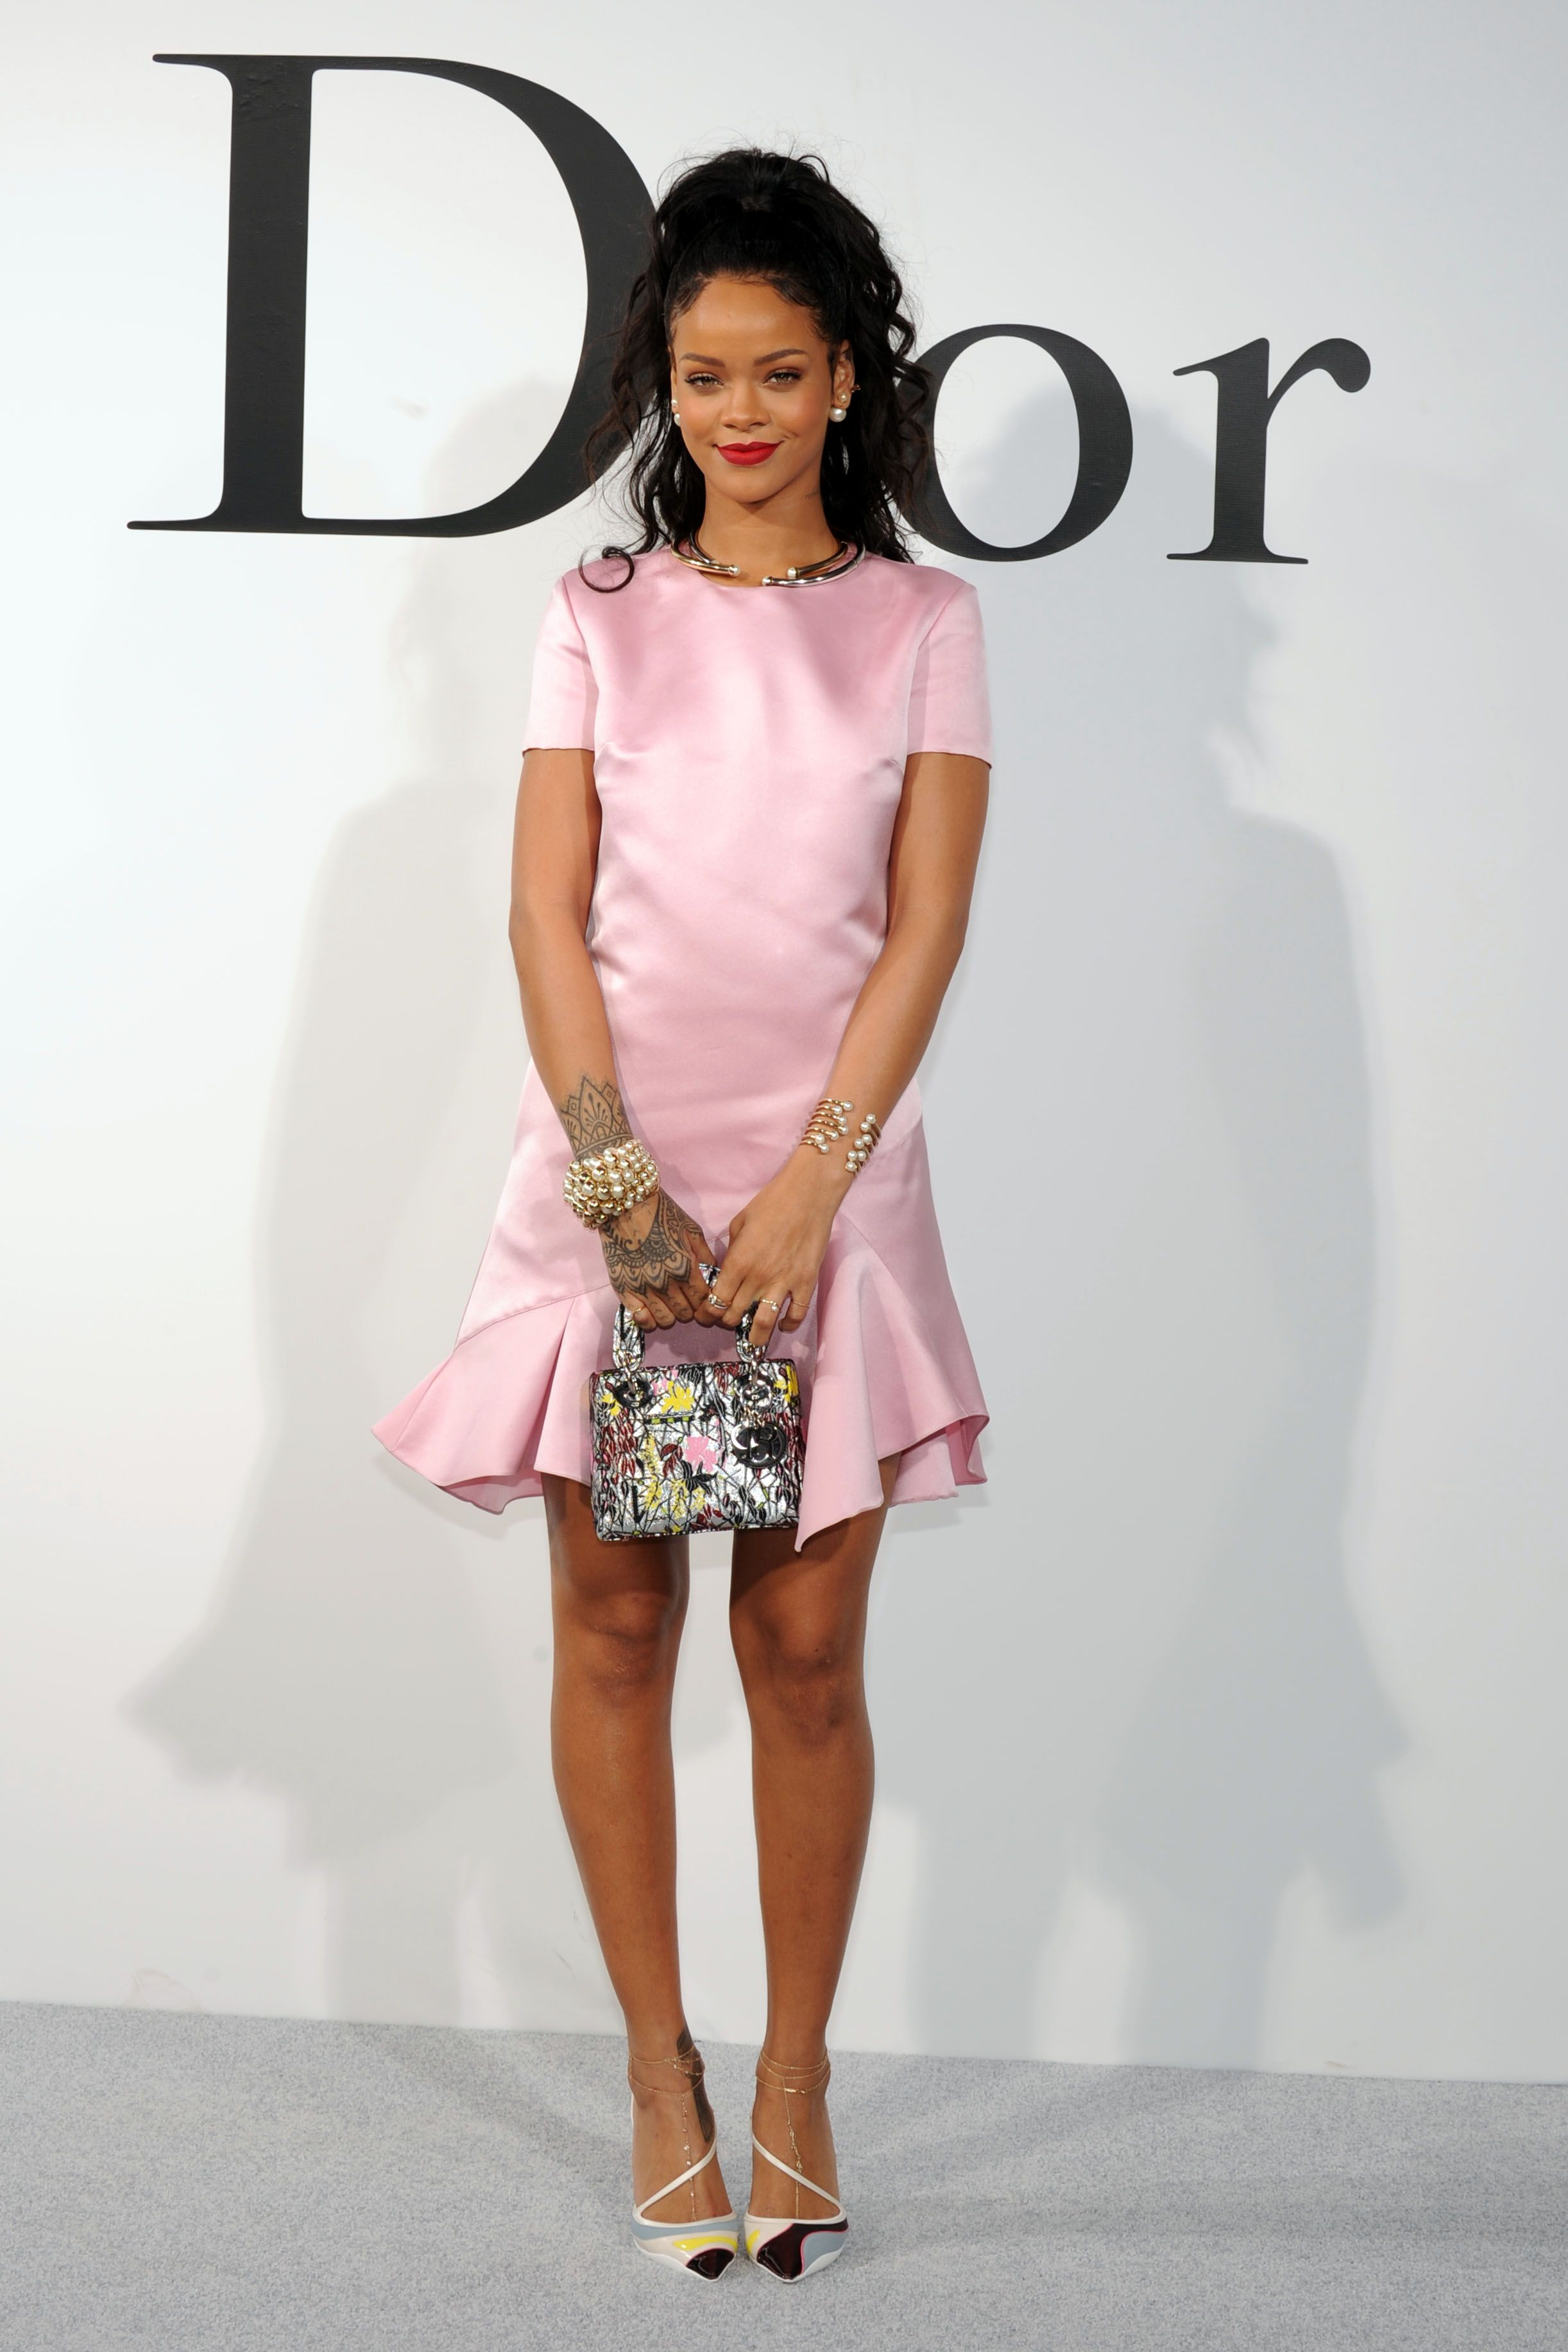 At the Christian Dior resort 2015 show, May 2014 - Photo: Bryan Bedder/Getty Images for Christian Dior